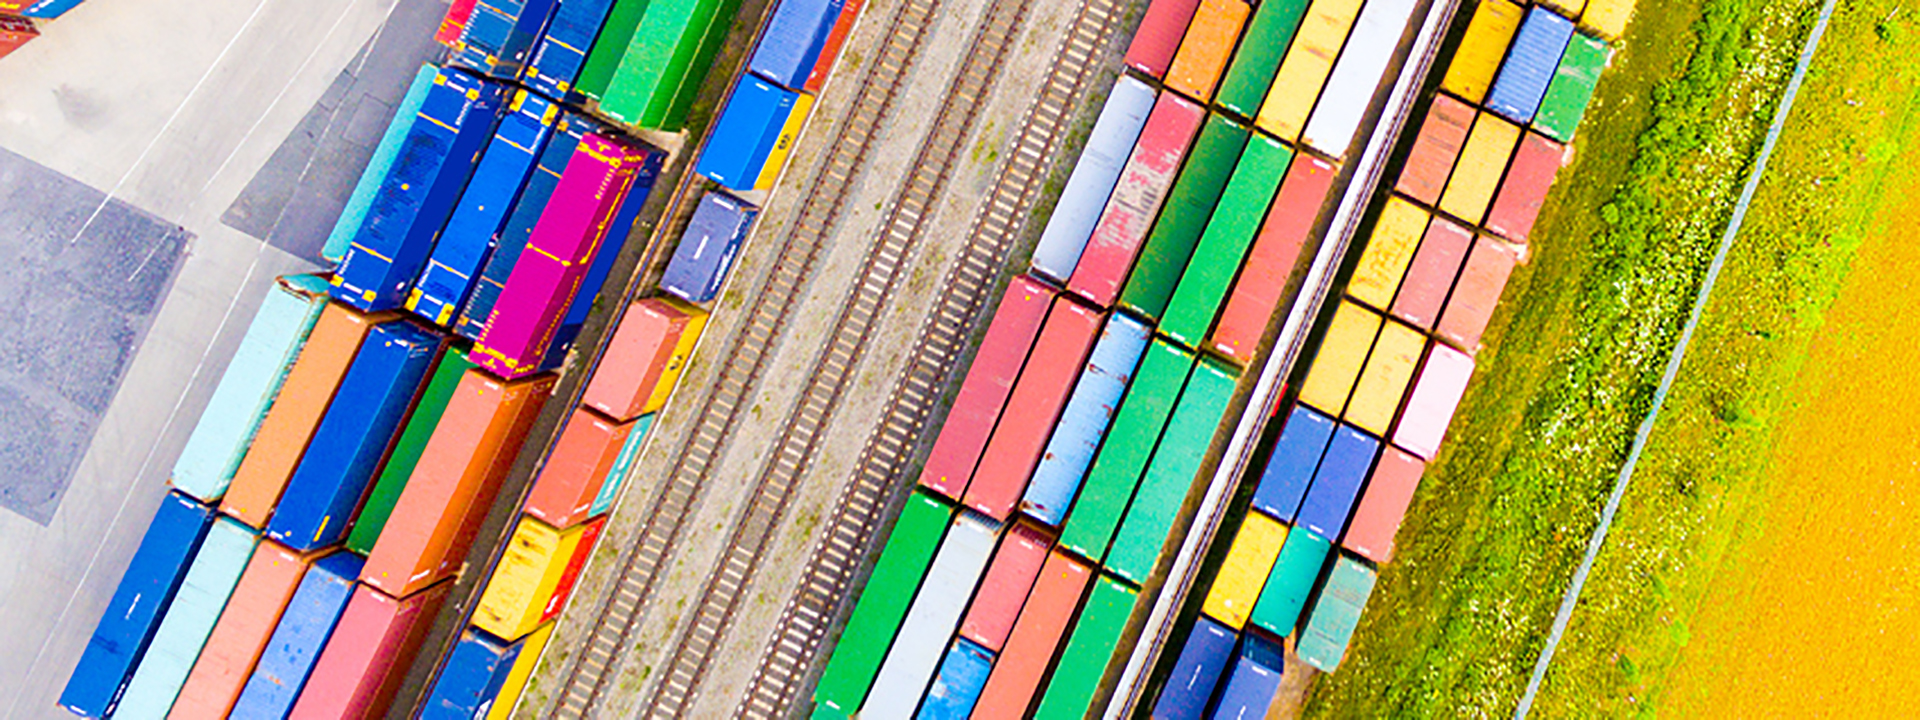 ETCS on Belgian freight route